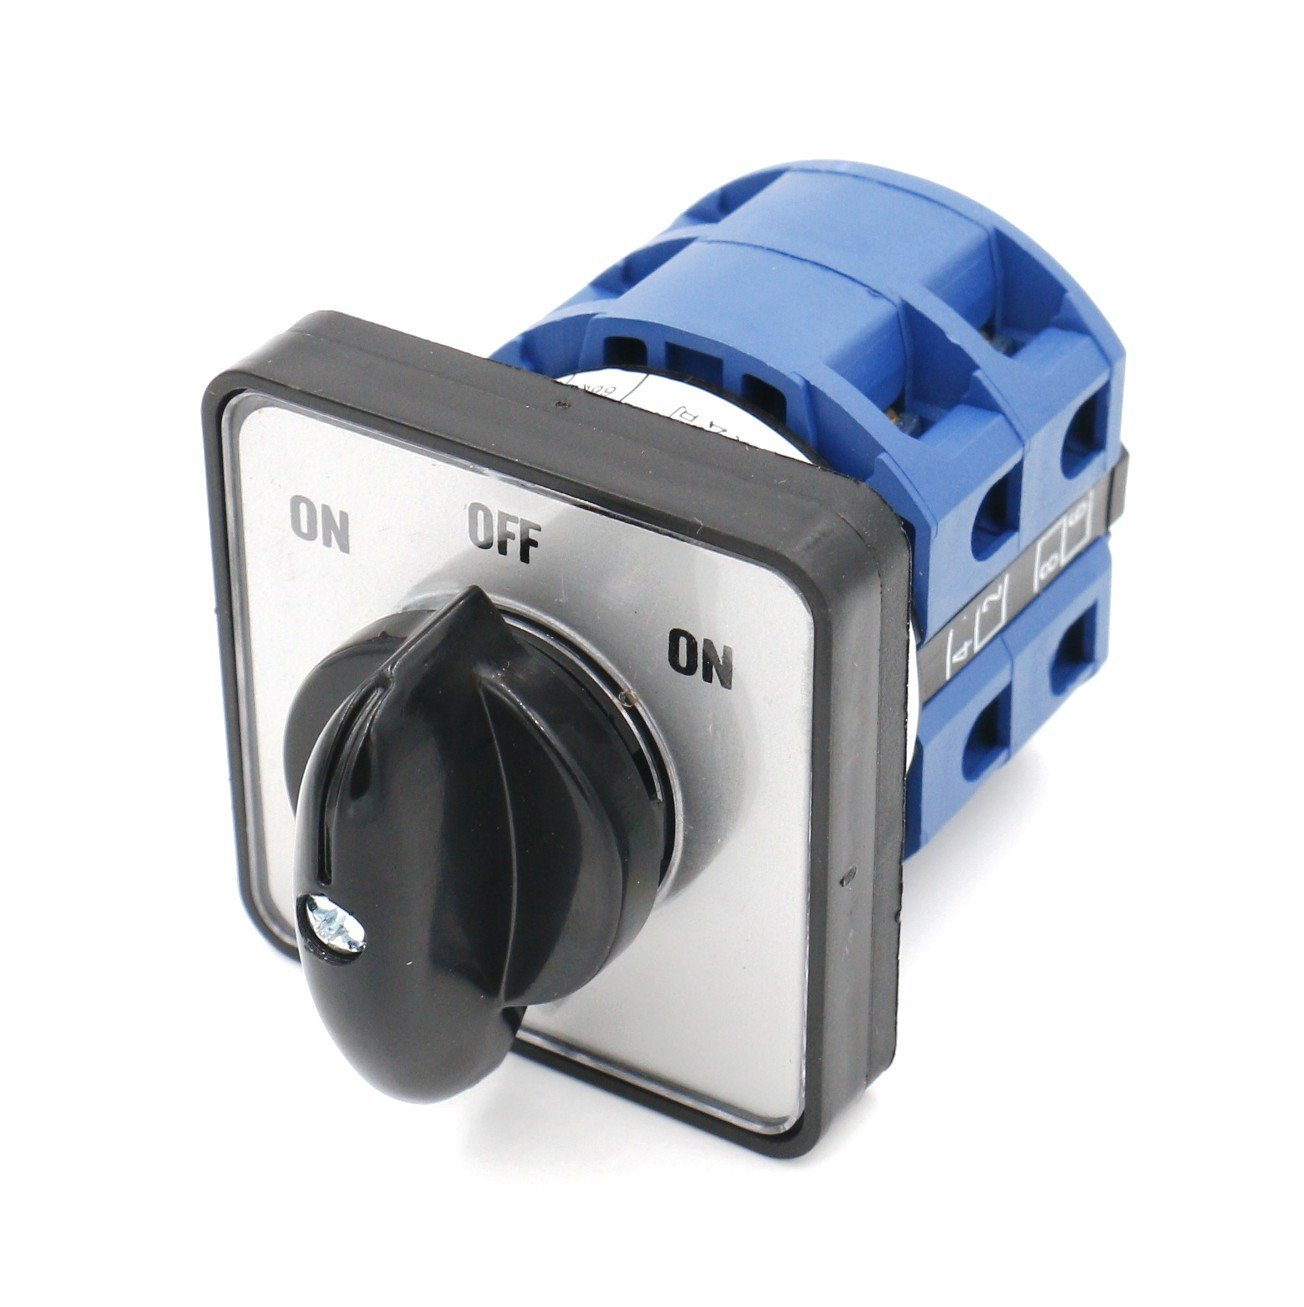 Baomain 660V 25A 2-Pole 3-Position Momentary 8 Terminals Changeover Control Rotary Cam Switch SZW26-25/B202.2